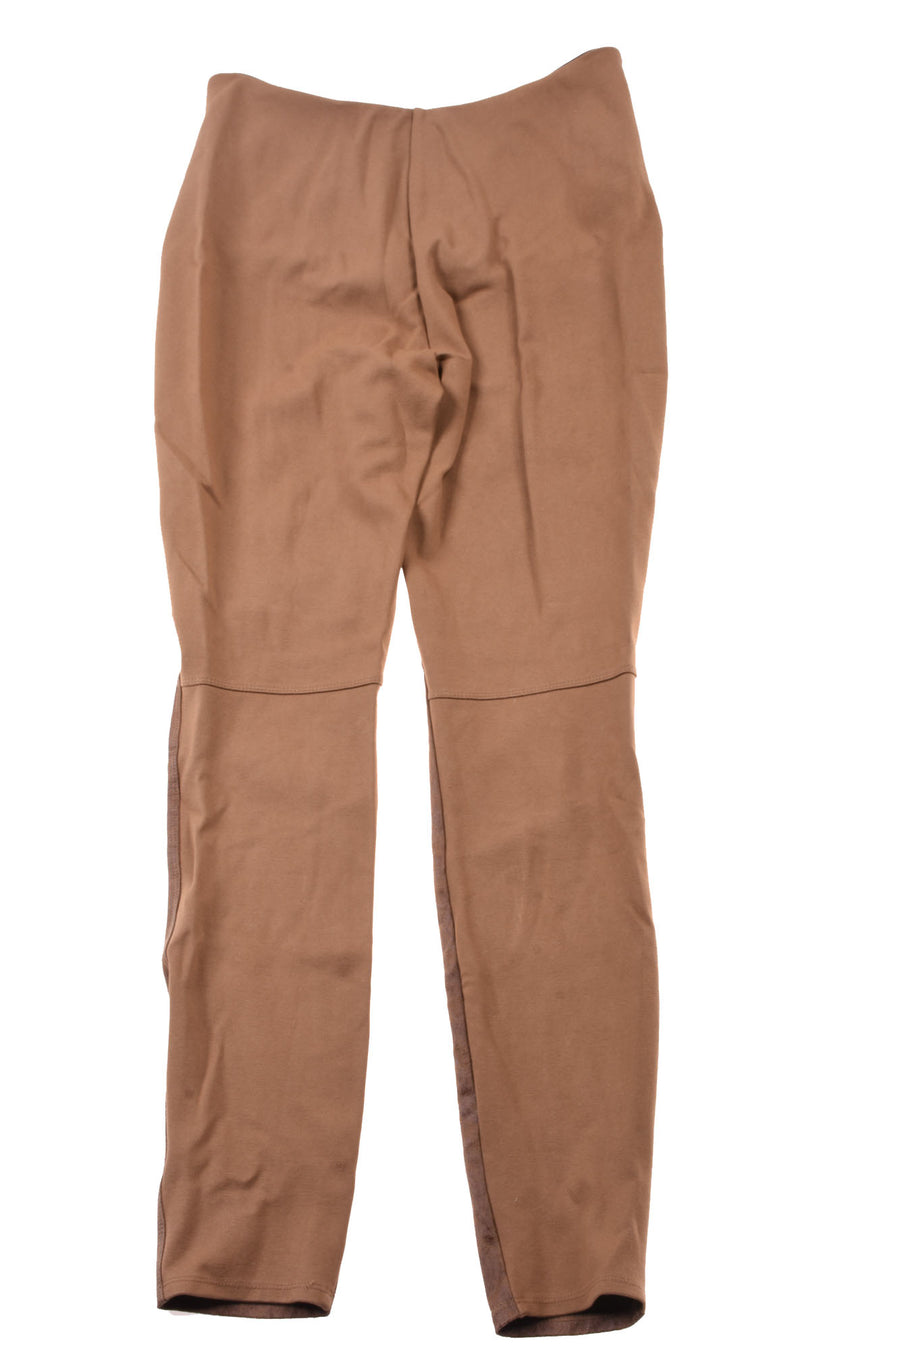 USED Lysse Women's Pants Medium Brown